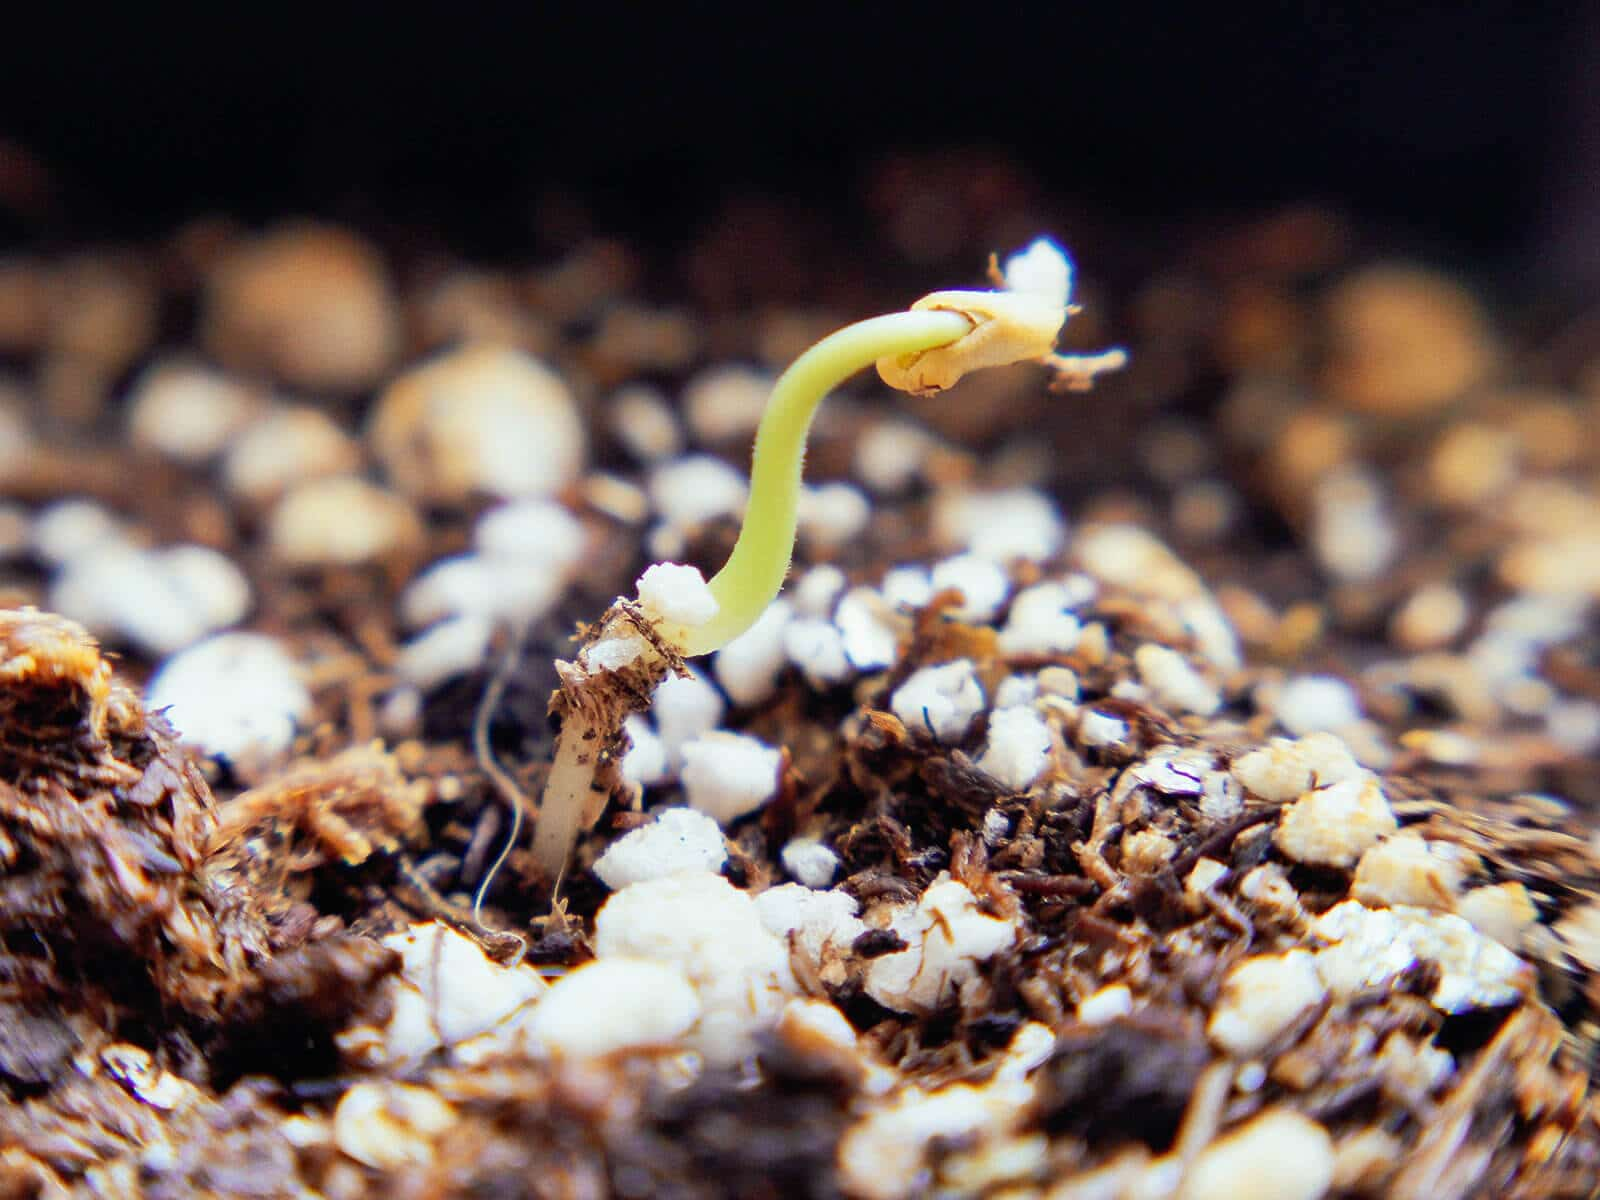 Transplant the germinated seed in potting soil